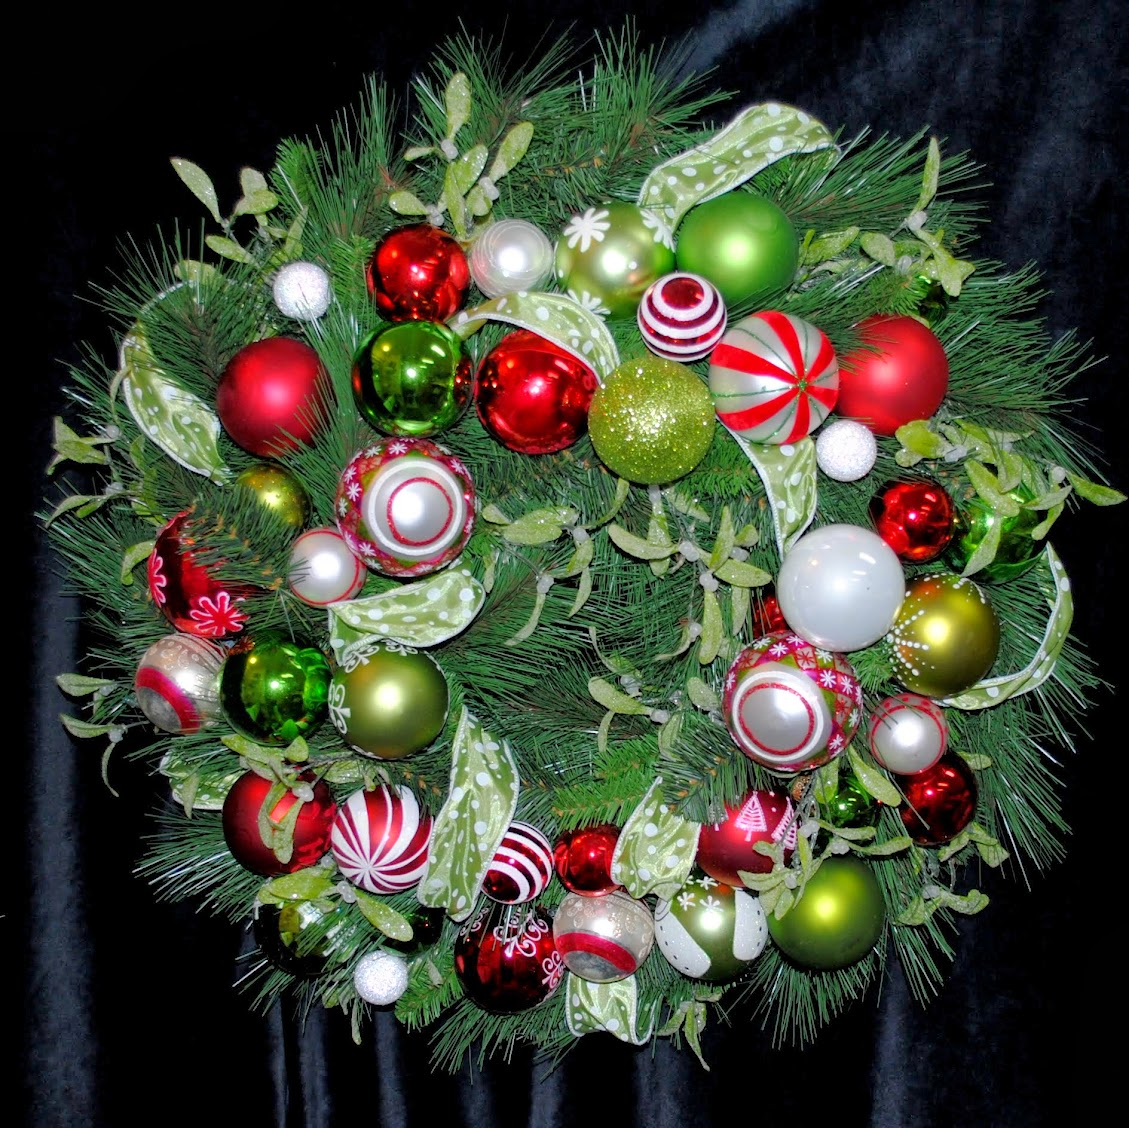 Jingle, Jingle, Jingle Christmas Ornament Wreath OWR8038